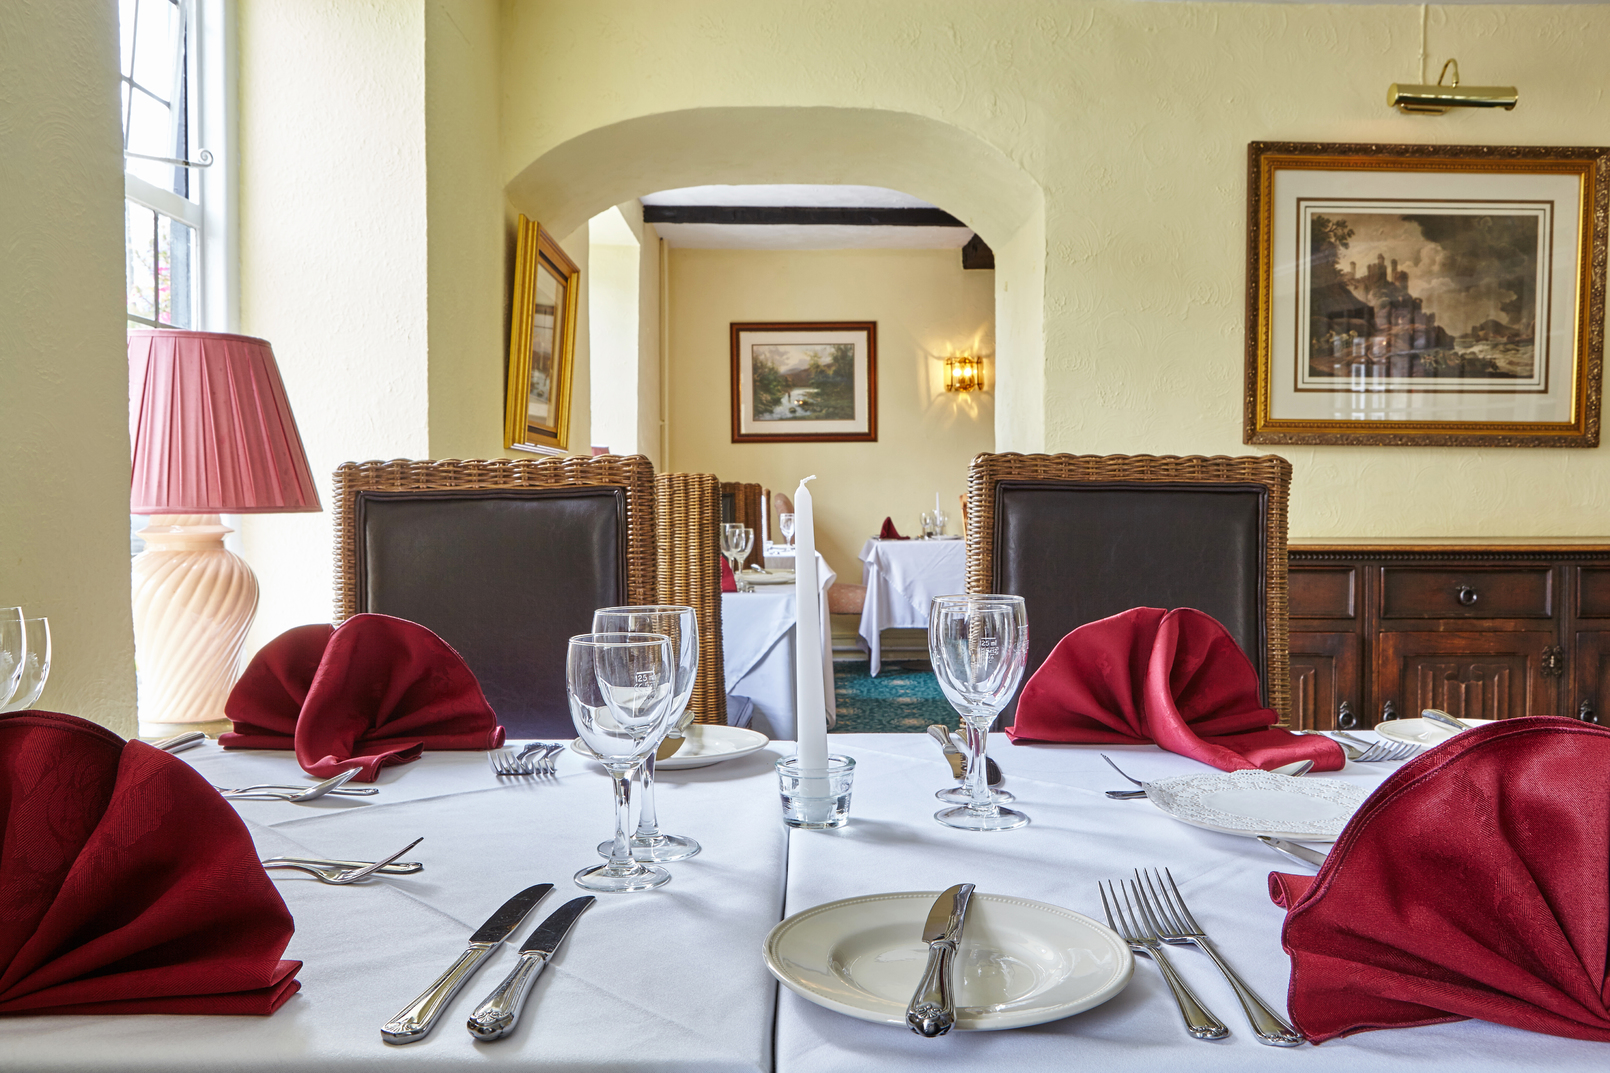 The George Hotels Rooms Chepstow